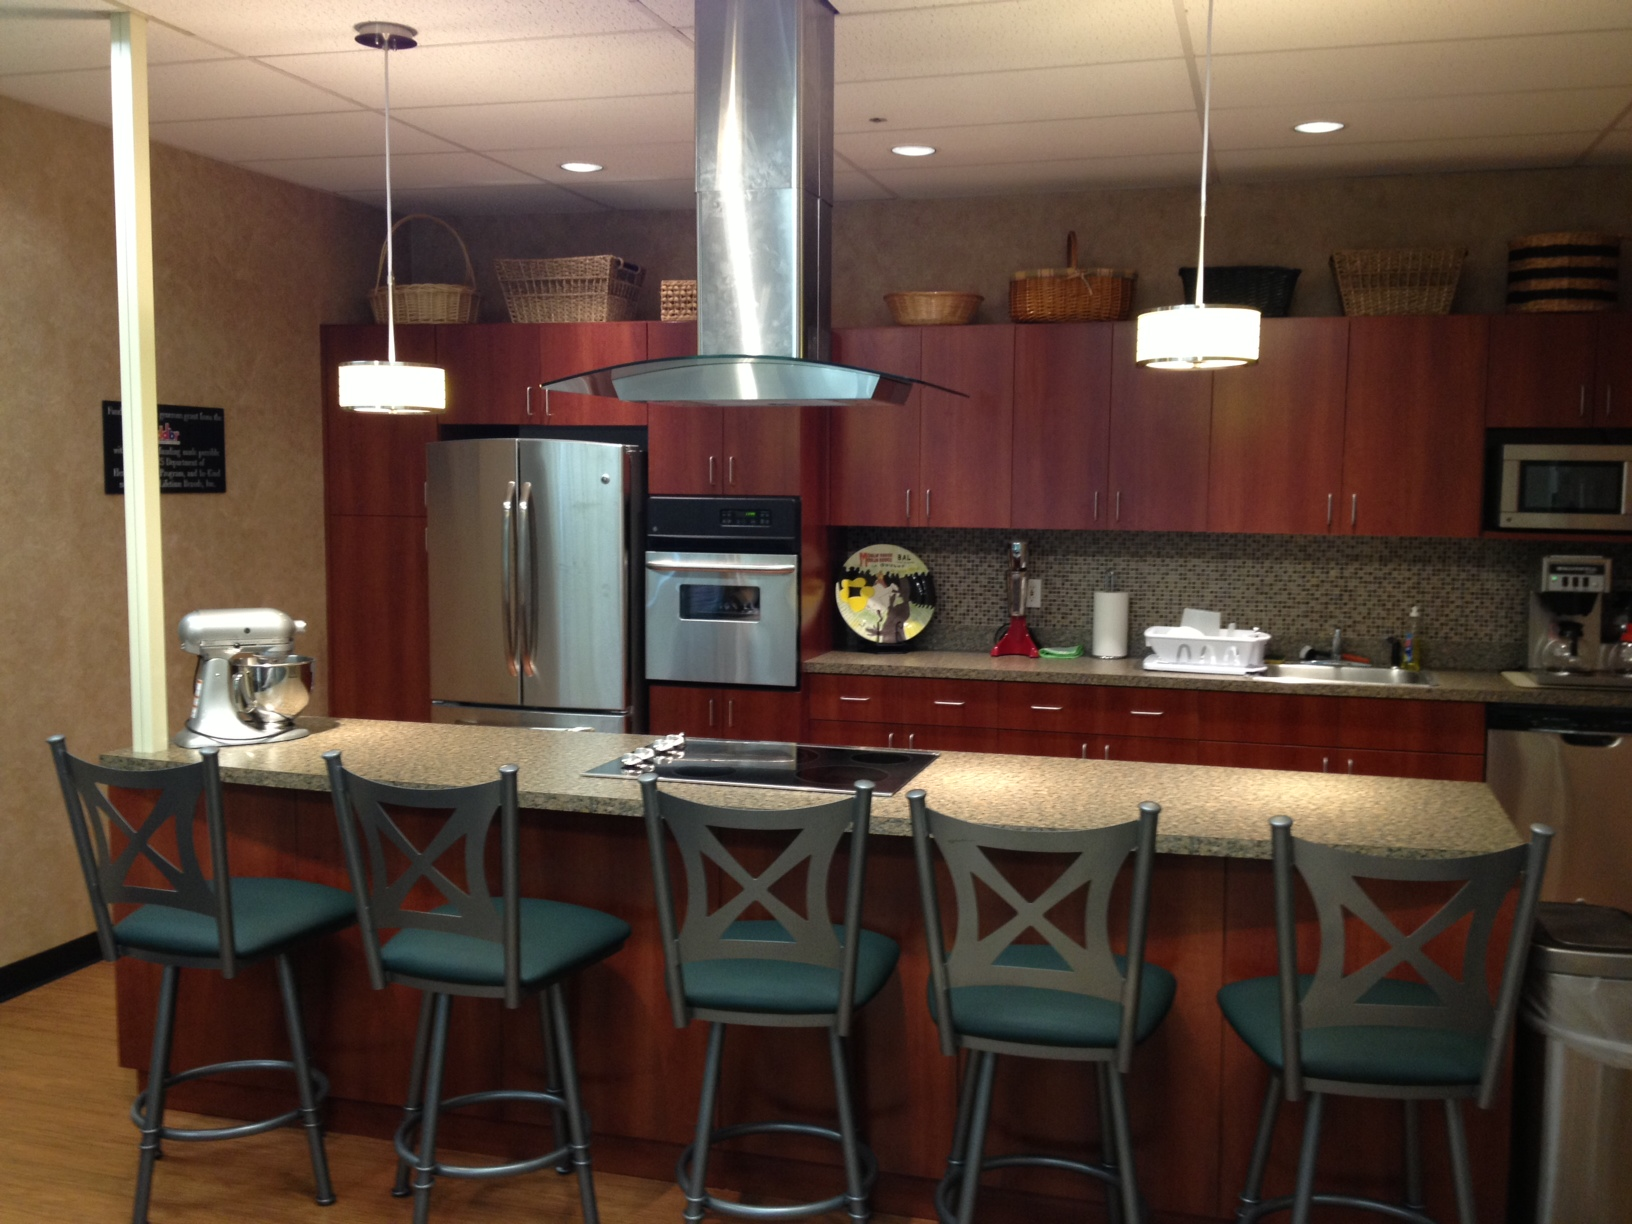 Kitchen Design Courses Near Me Long Island Cares Cuts Ribbon On New Ddbr Kitchen Studio